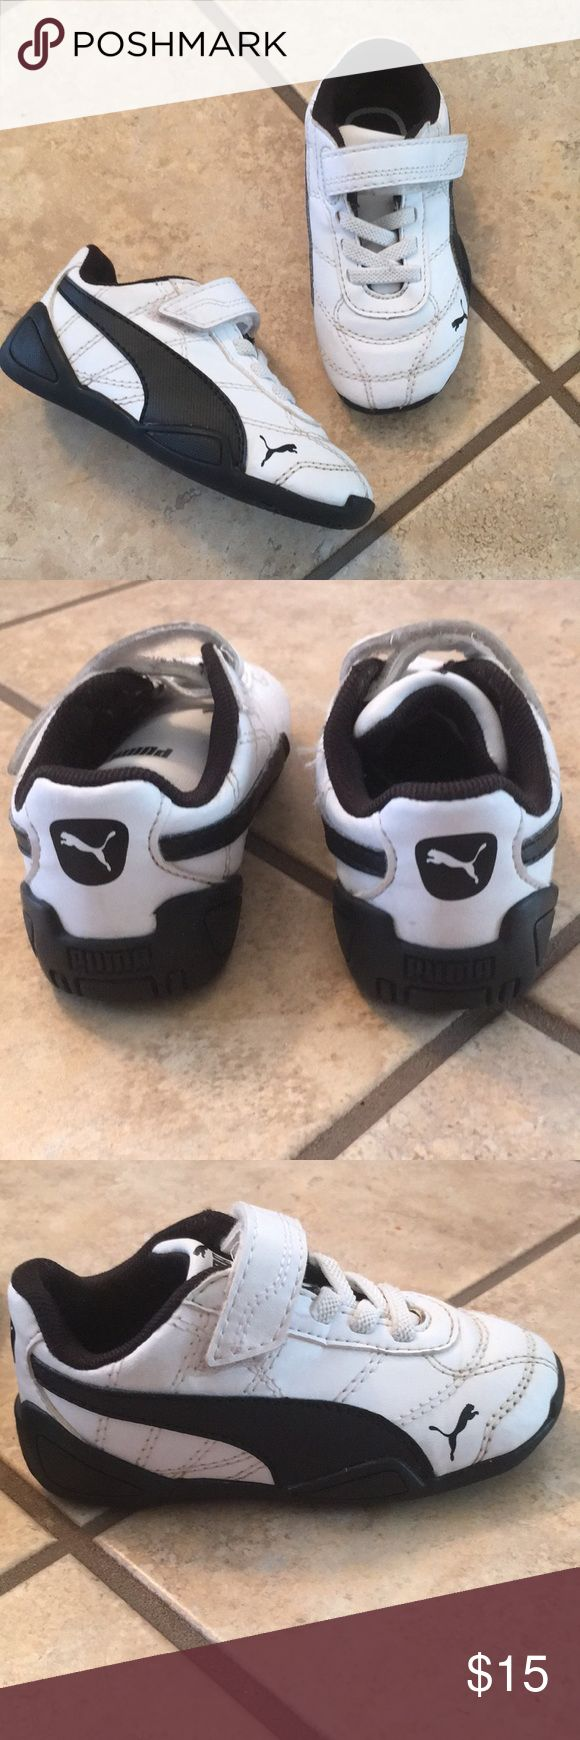 Puma toddler shoes 💕SALE💕 Black-and-white lace less pumas. Puma Shoes Sneakers